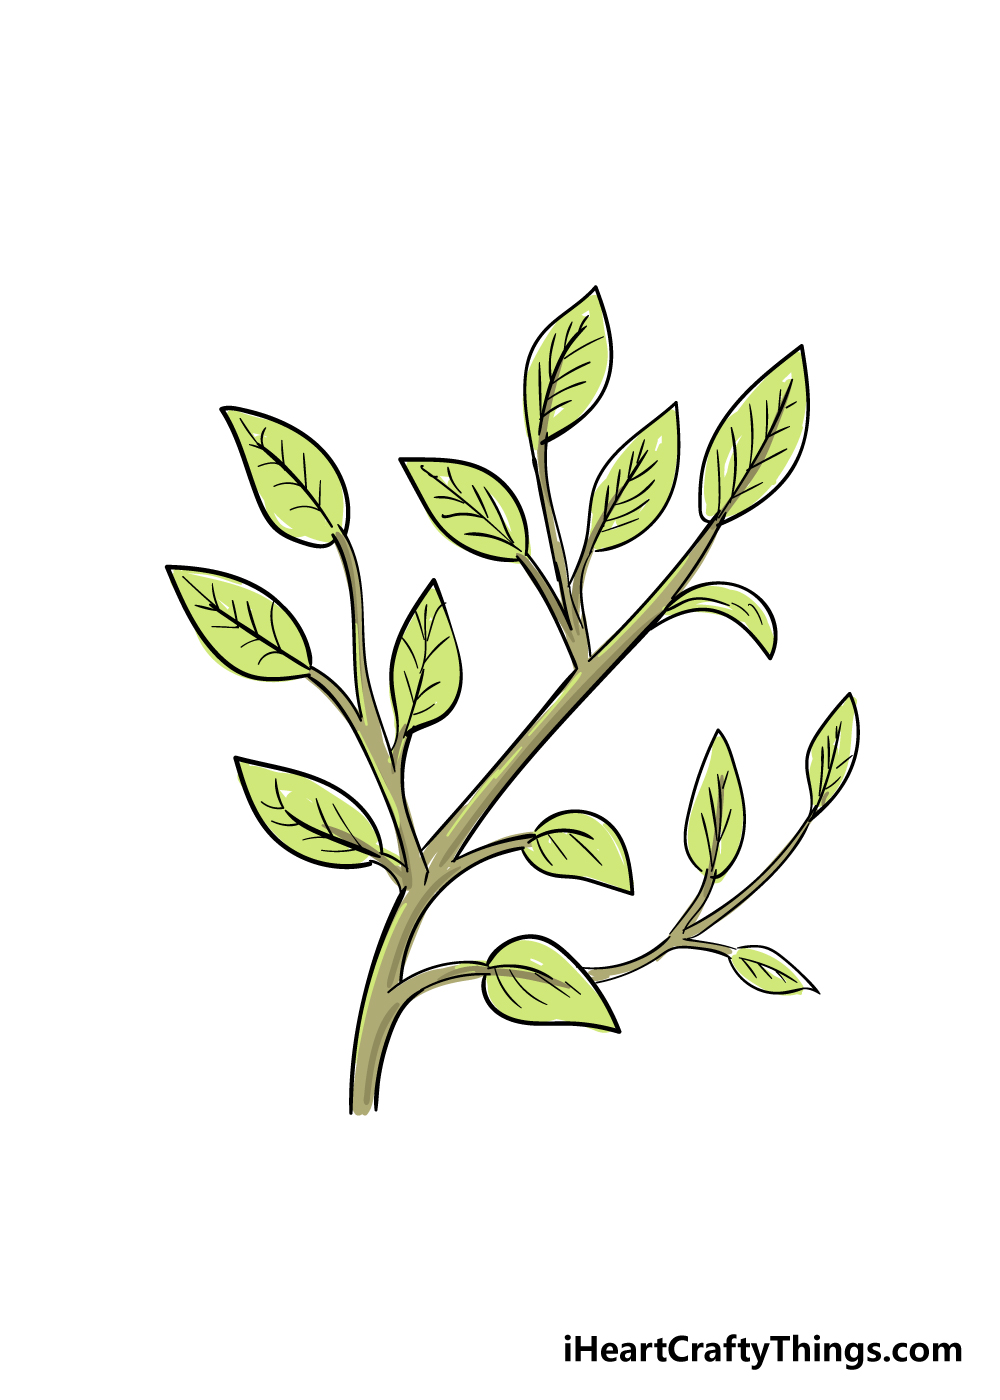 leaves on a tree drawing step 7